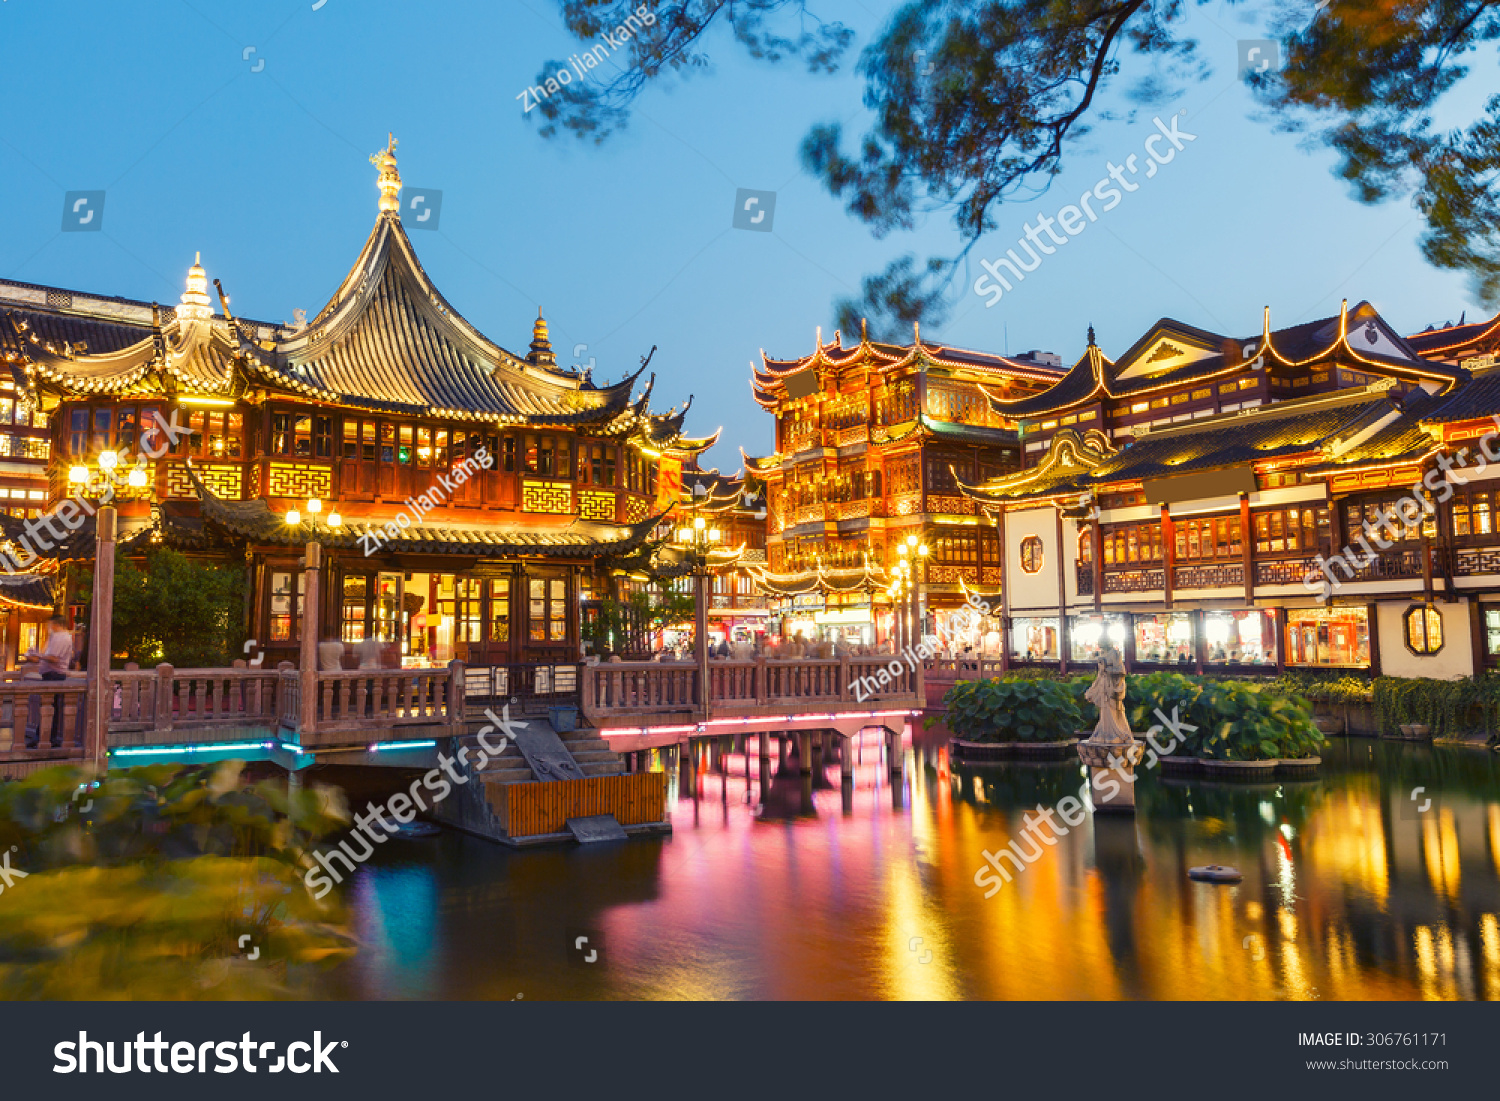 Chinese Traditional Yuyuan Garden Building Scenery In The ...